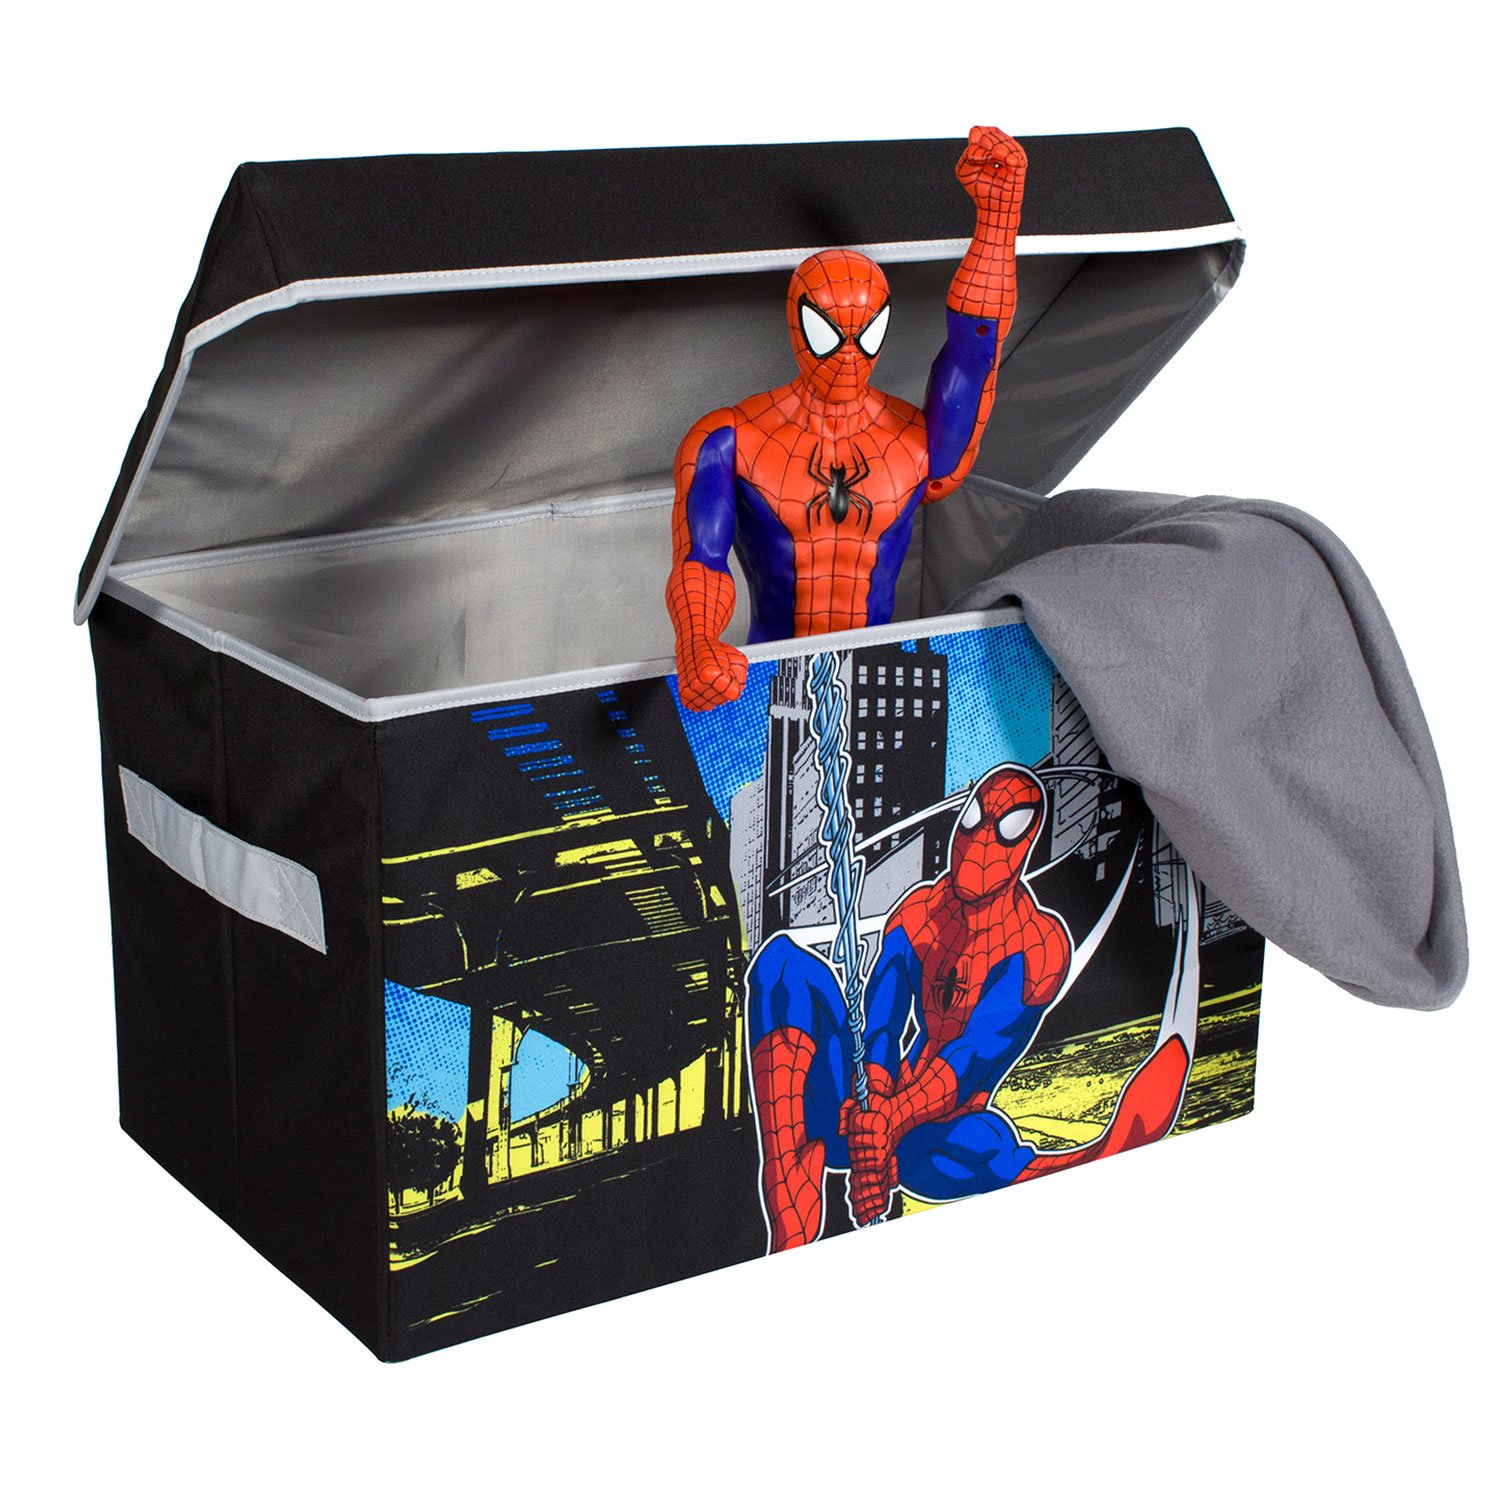 Spiderman Collapsible KidsToy Storage Chest byMarvel - Flip-Top Toy Organizer Bin for Closets, Kids Bedroom, Boys & Girls Toys - Foldable Toy Basket Organizer with Strong Handles & Design